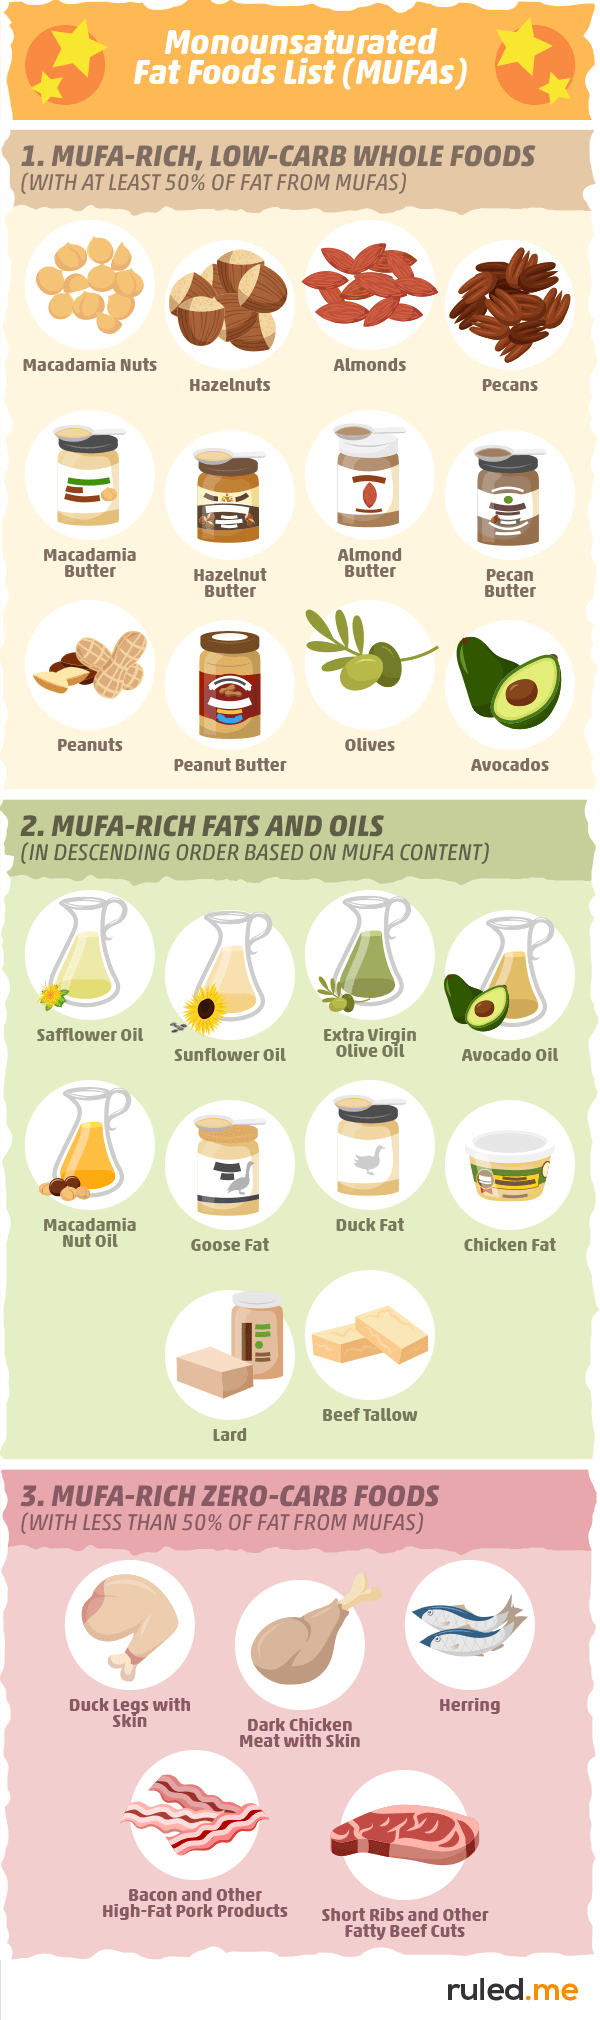 Monounsaturated Fat Food List